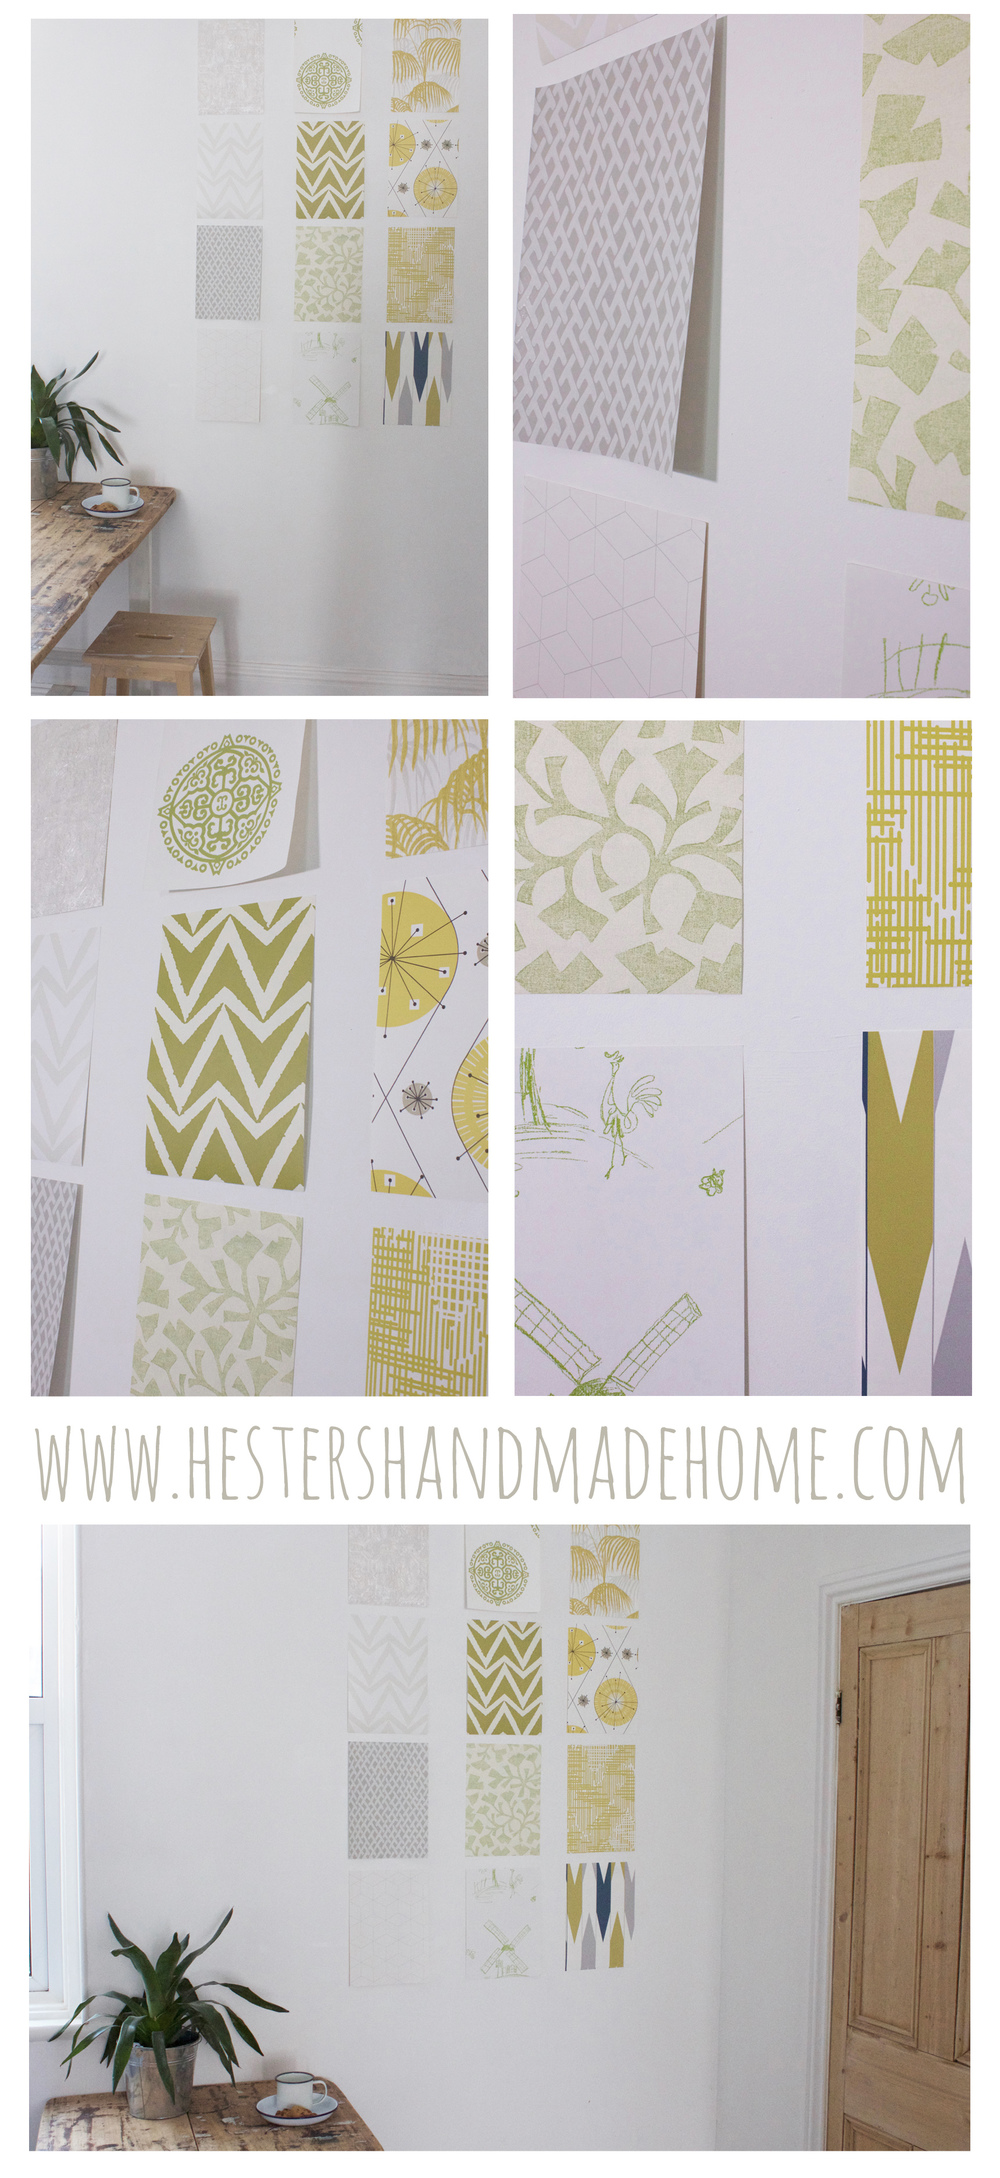 Wall art using wallpaper samples, tutorial by Hester's Handmade Home